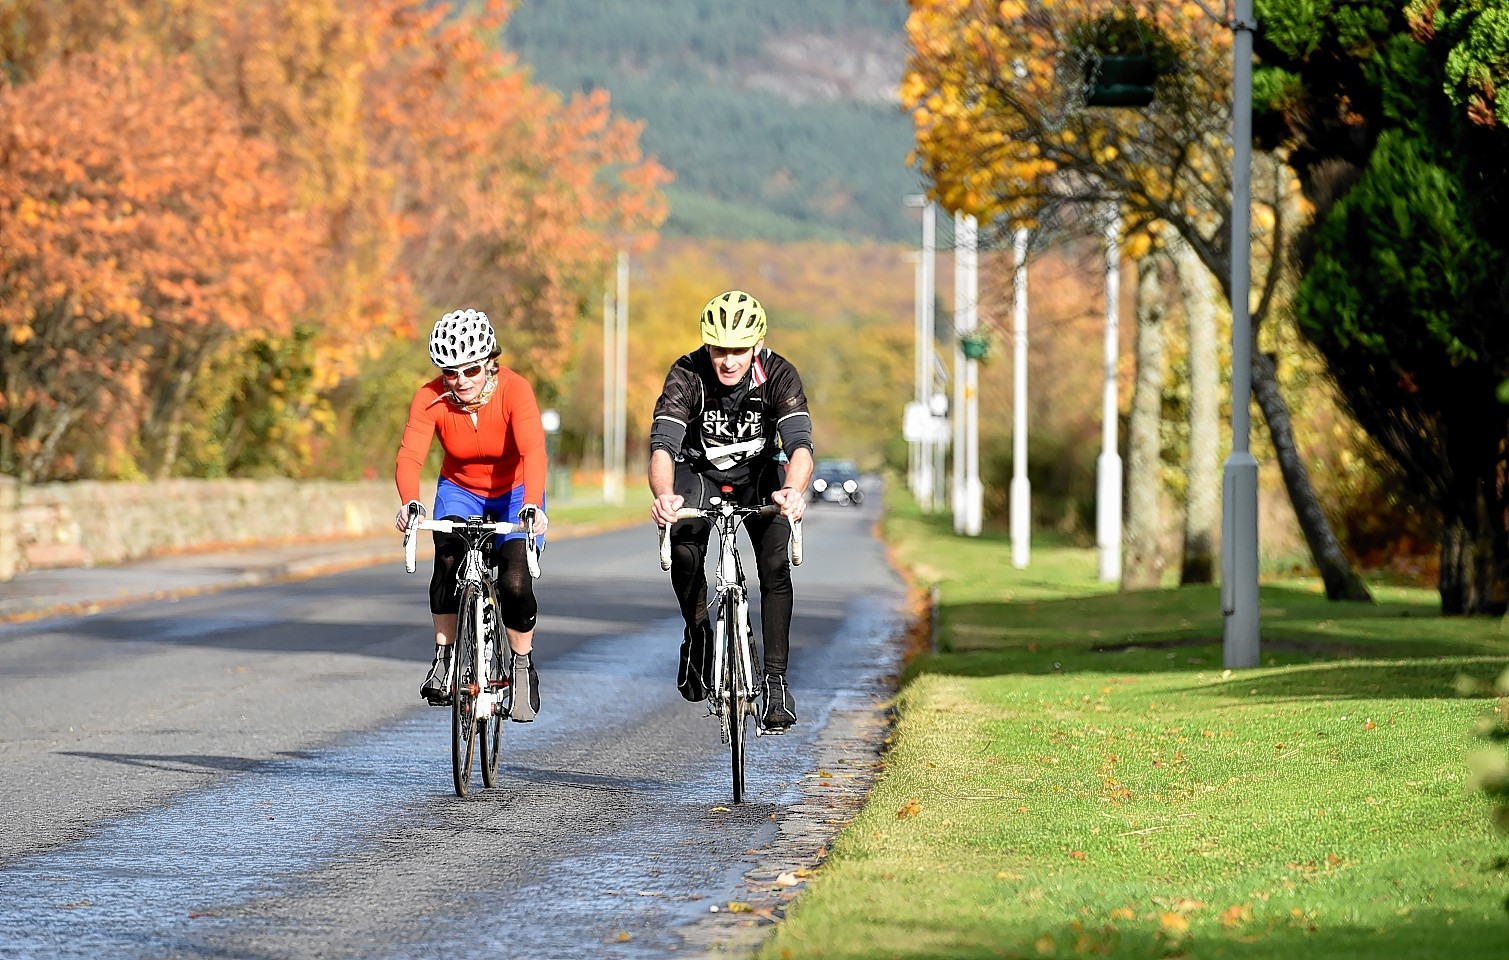 Cyclists take part in the charity ride for Kayleigh's Wee Stars at Ballater. Picture by Colin Rennie